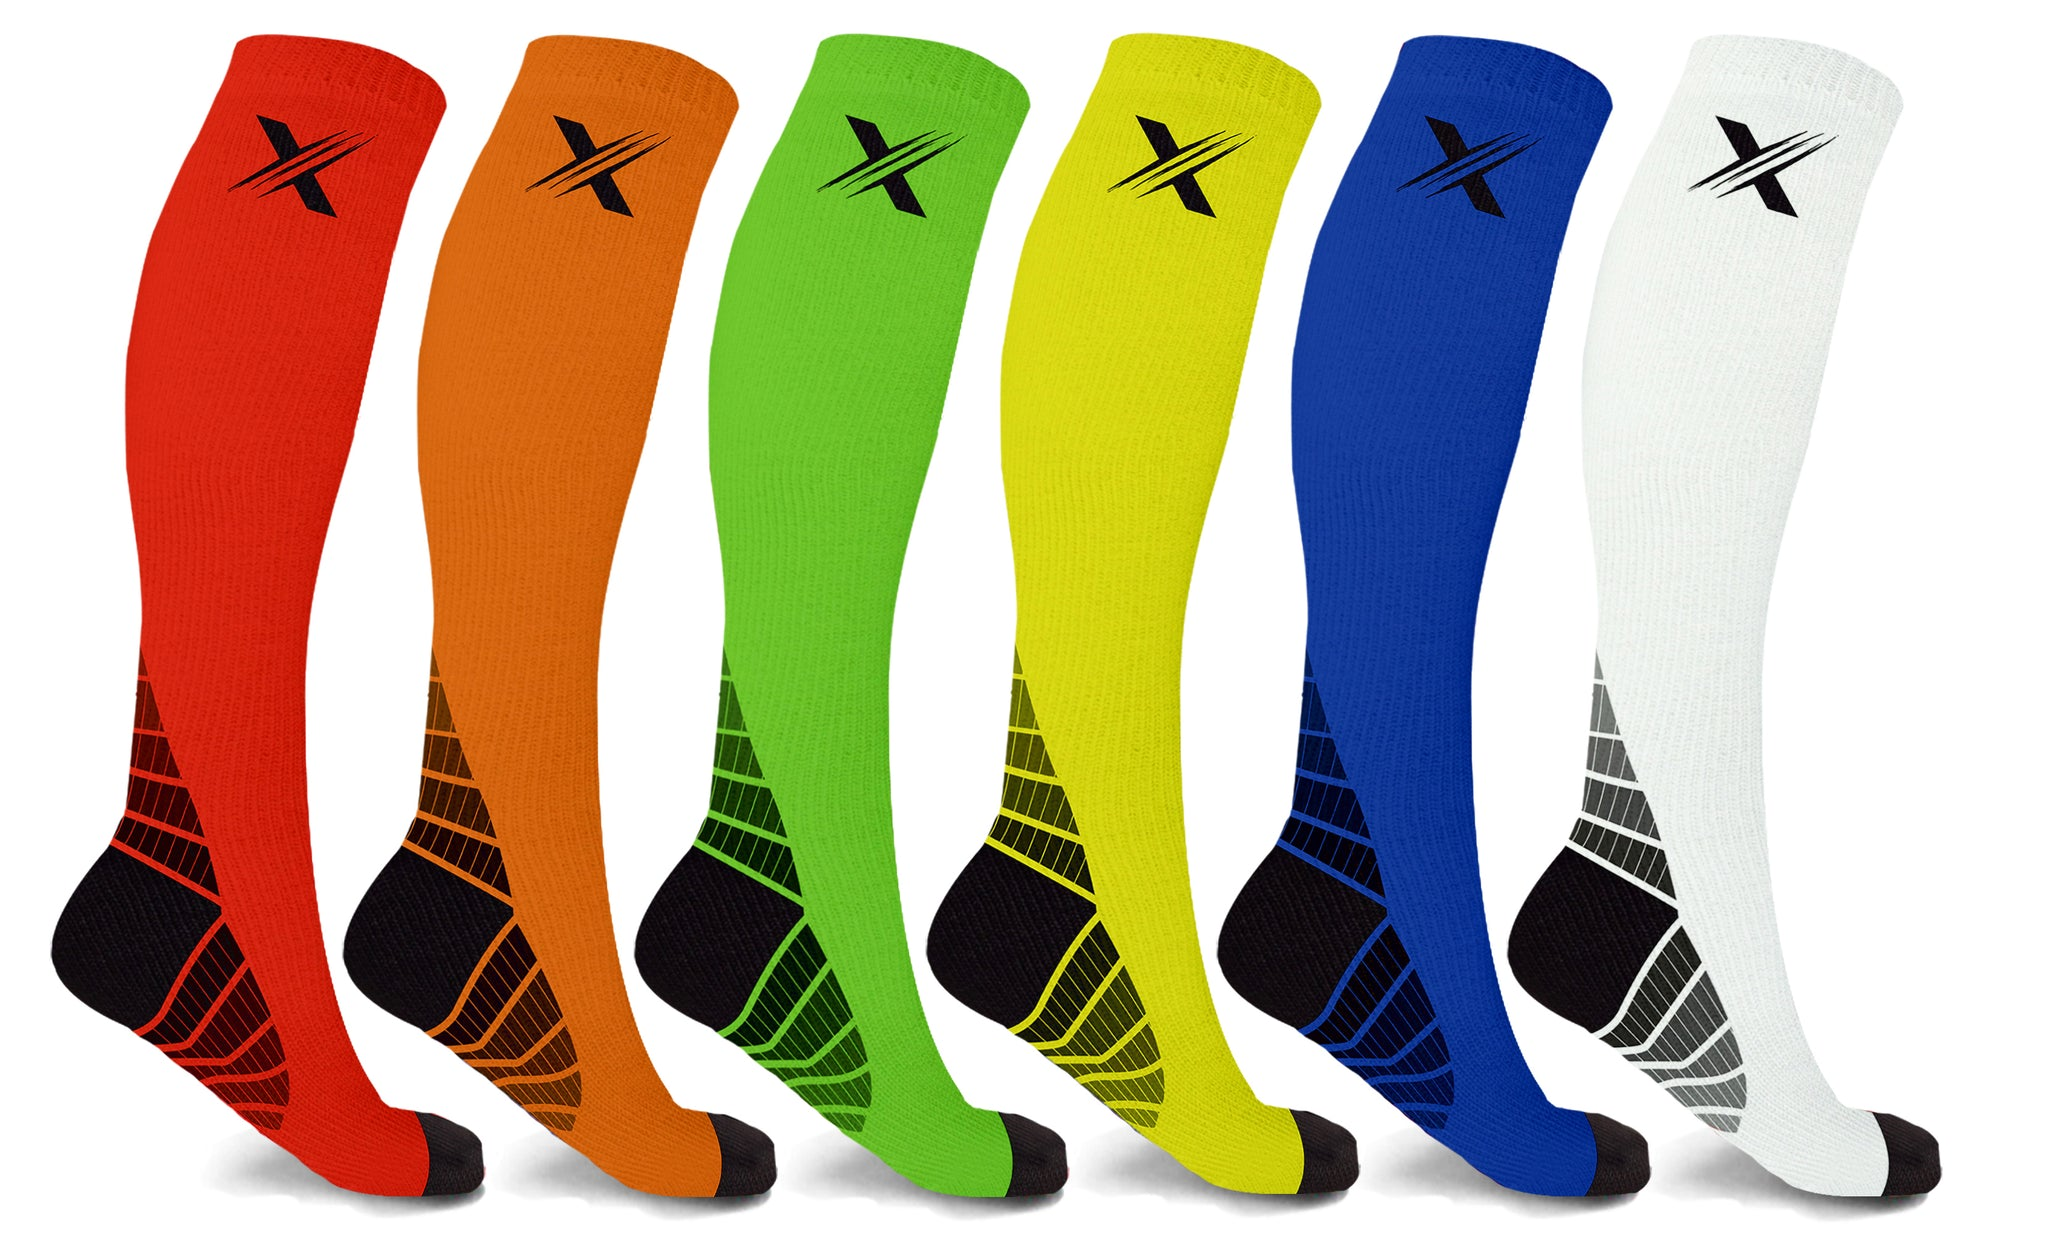 6-Pairs: Performance Support Compression Socks